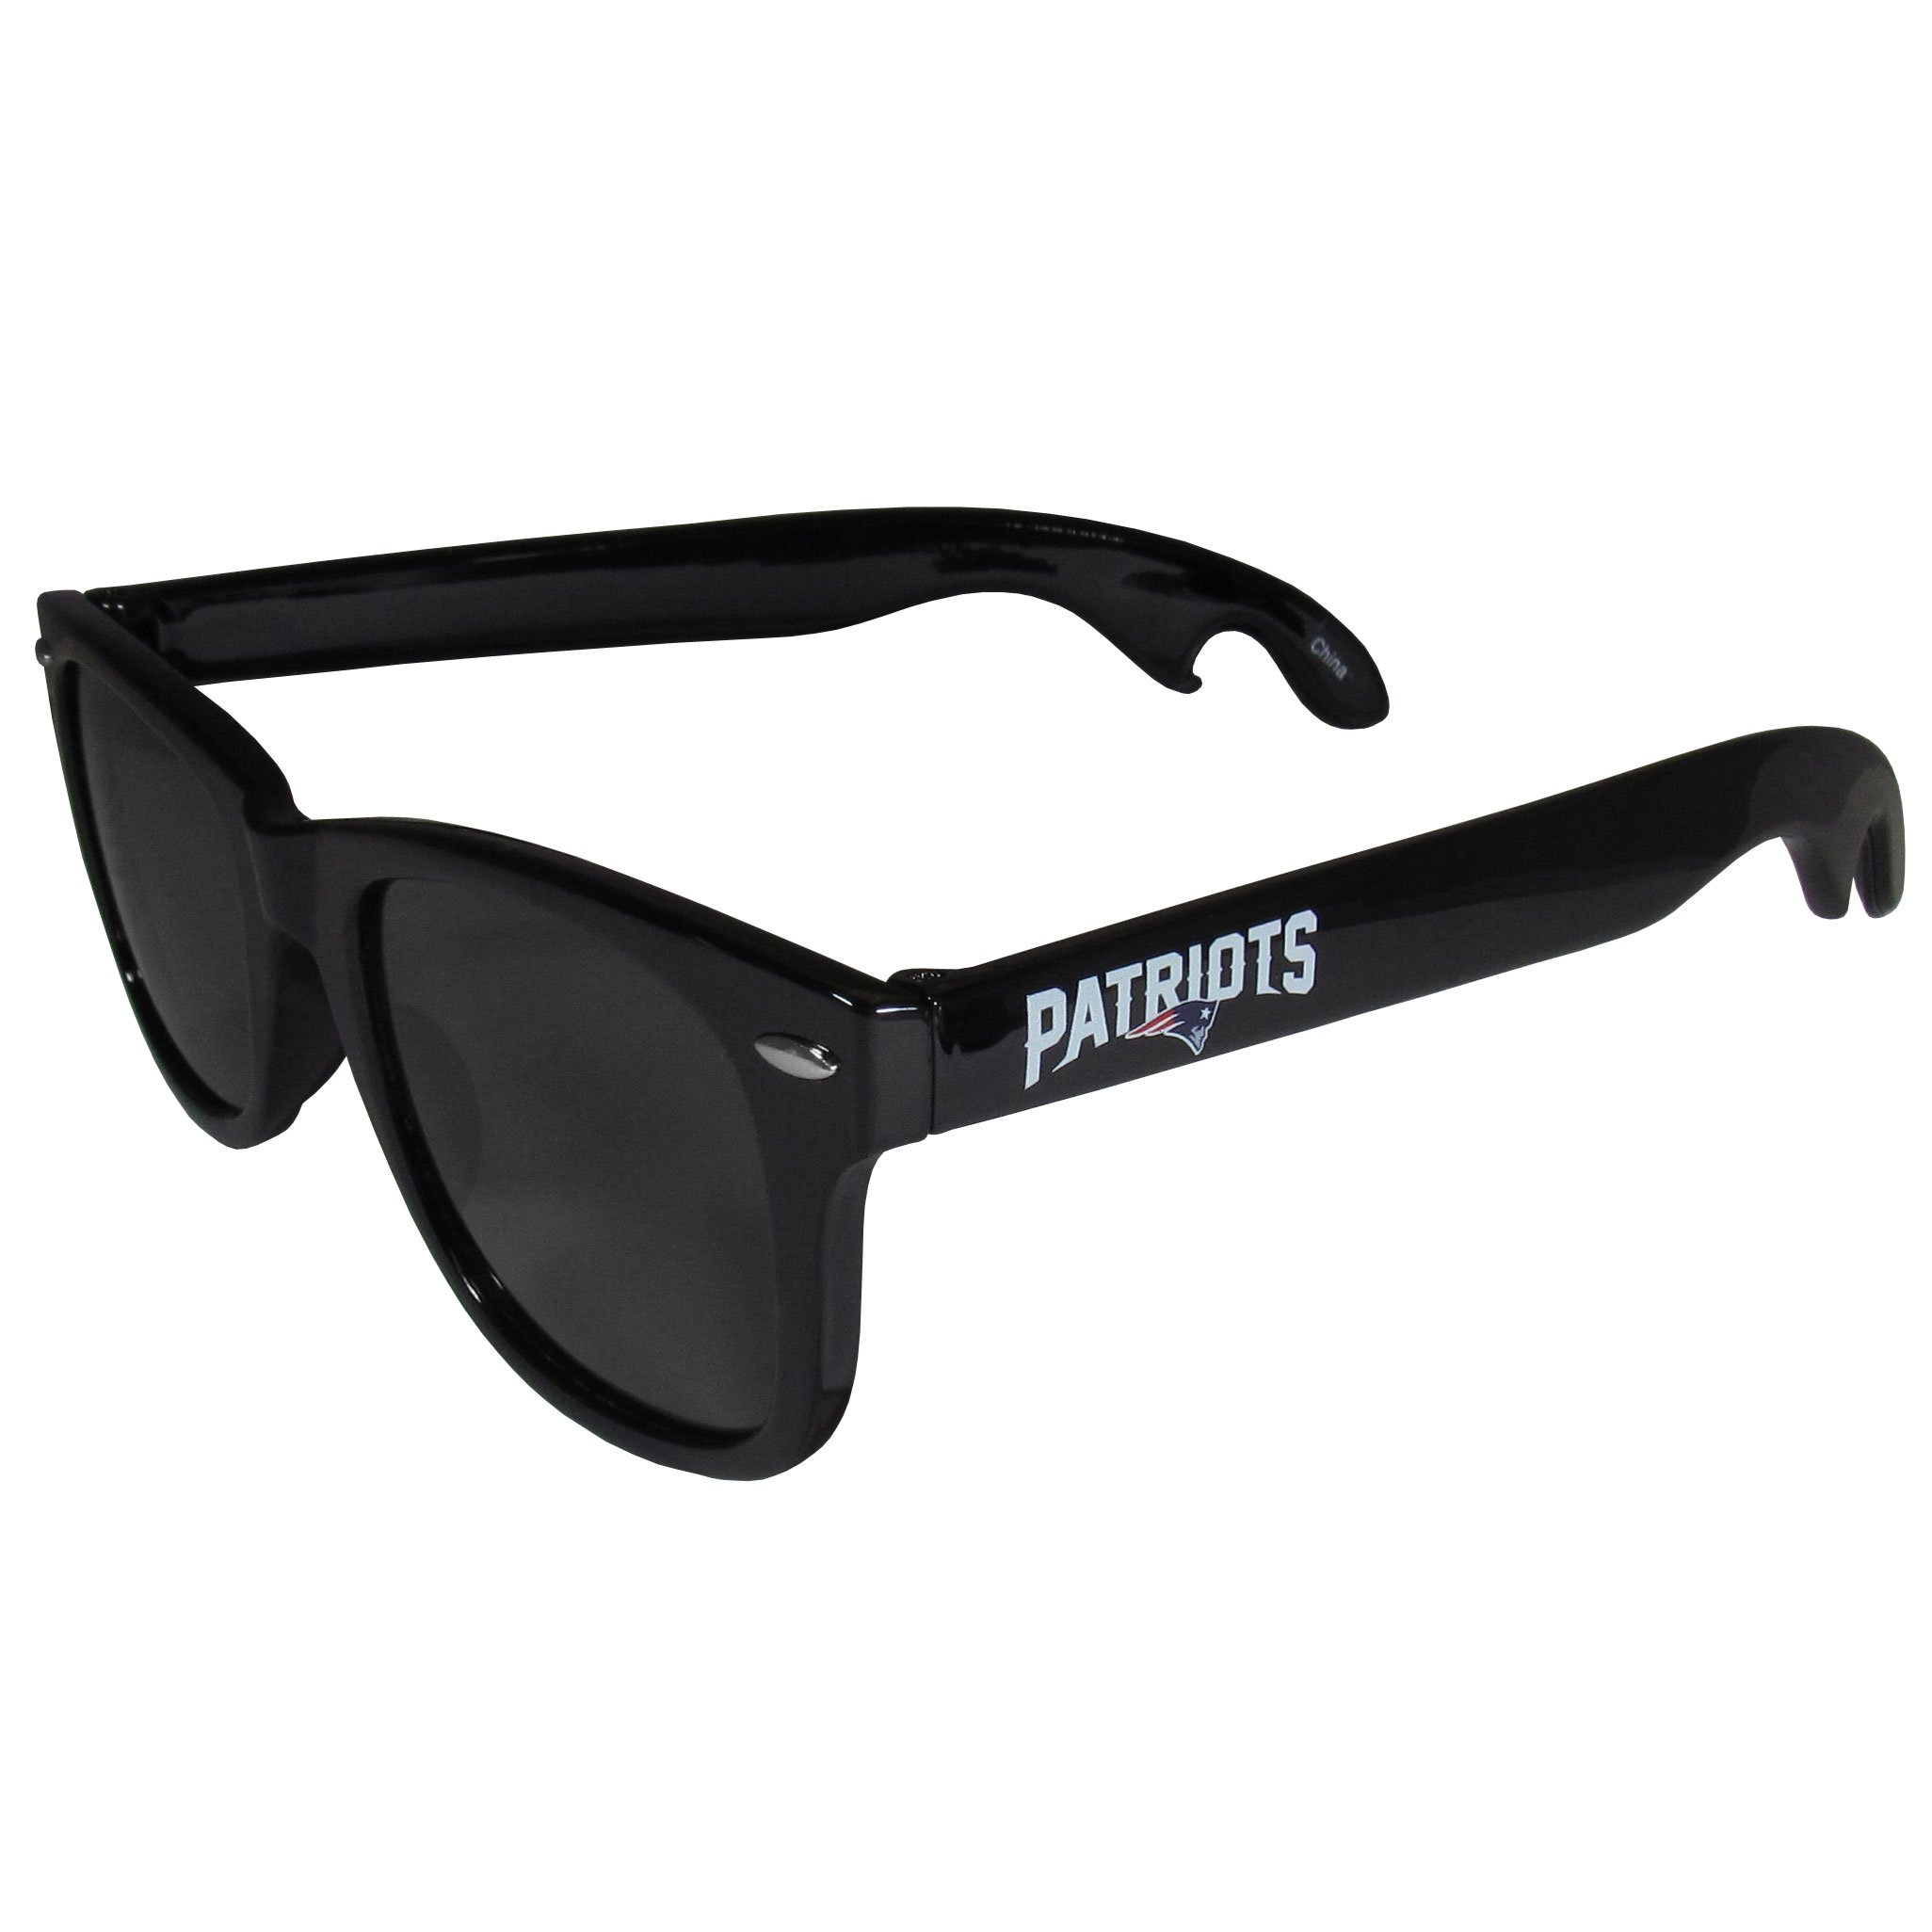 New England Patriots Beachfarer Bottle Opener Sunglasses - Seriously, these sunglasses open bottles! Keep the party going with these amazing New England Patriots bottle opener sunglasses. The stylish retro frames feature team designs on the arms and functional bottle openers on the end of the arms. Whether you are at the beach or having a backyard BBQ on game day, these shades will keep your eyes protected with 100% UVA/UVB protection and keep you hydrated with the handy bottle opener arms.